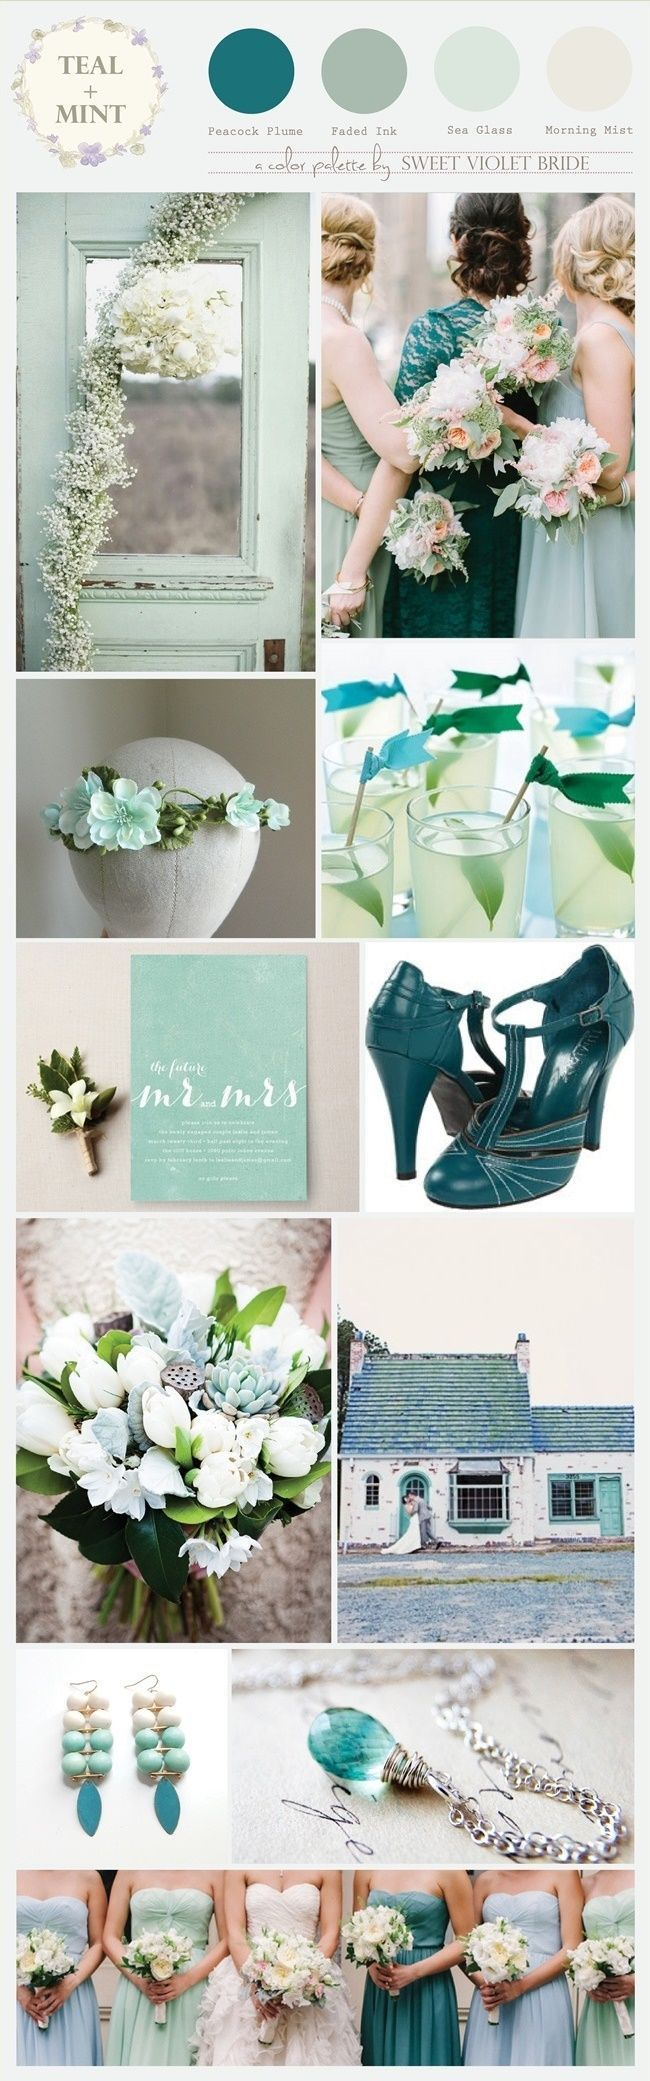 Color Palette : Teal + Mint/Sea Foam #wedding #inspiration